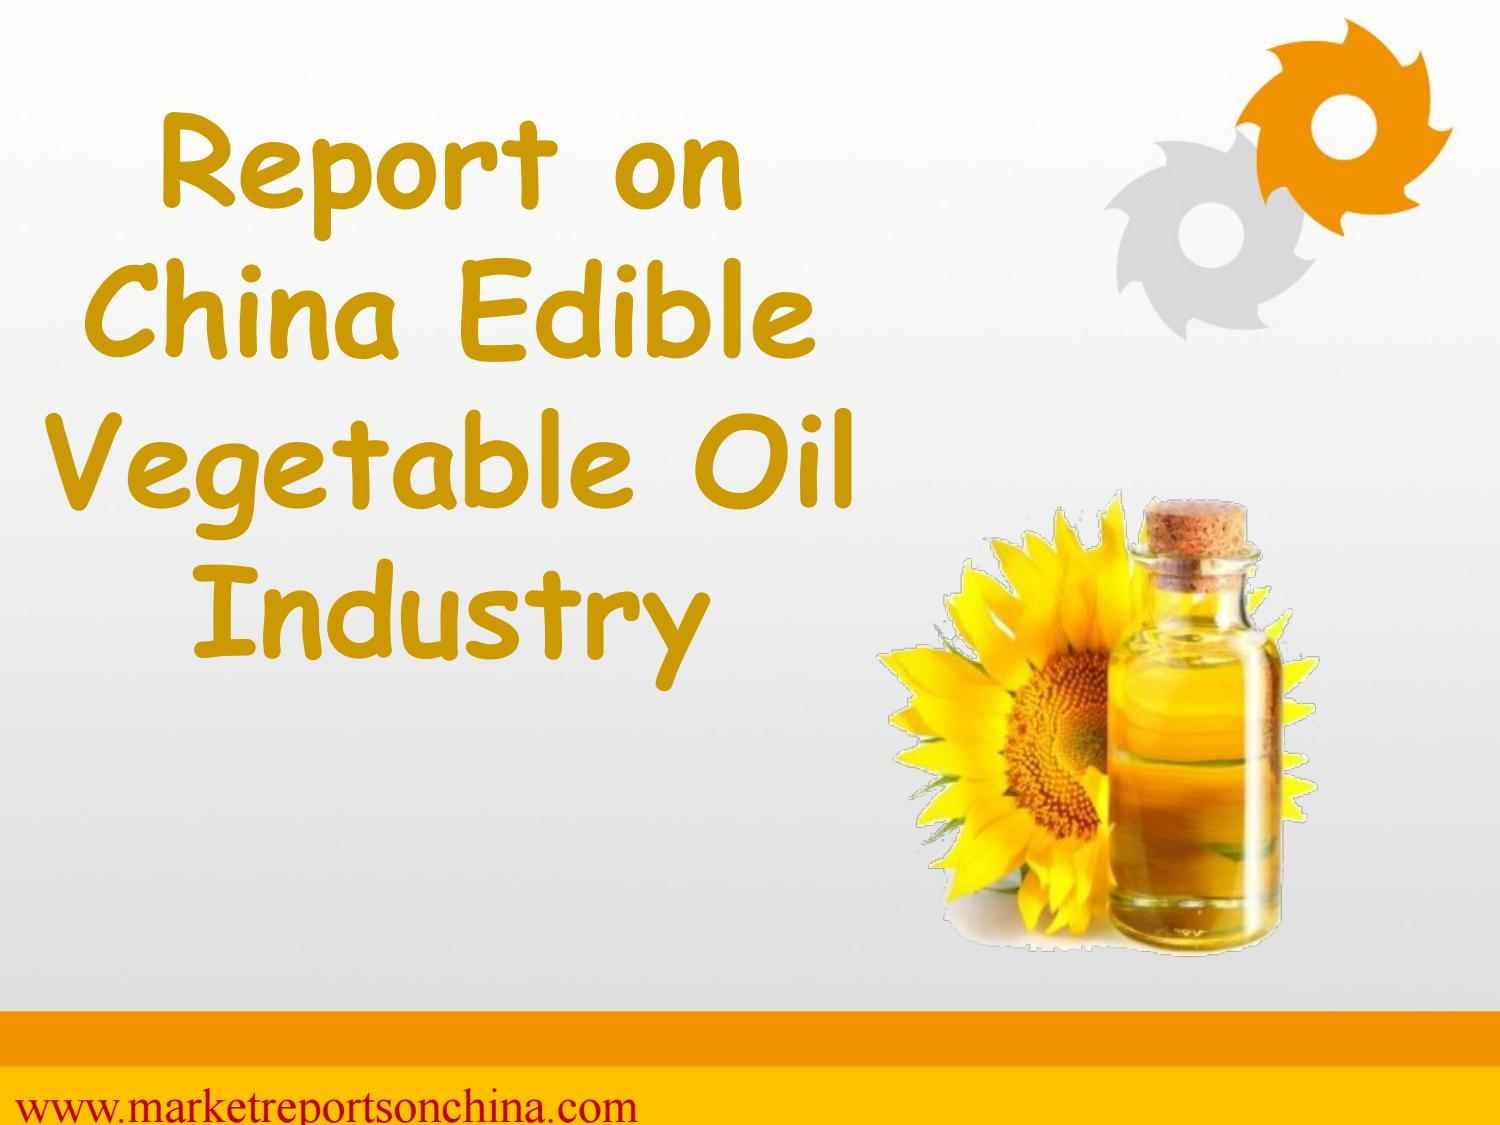 Report on China Edible Vegetable Oil Industry by Sarah_Davis - issuu